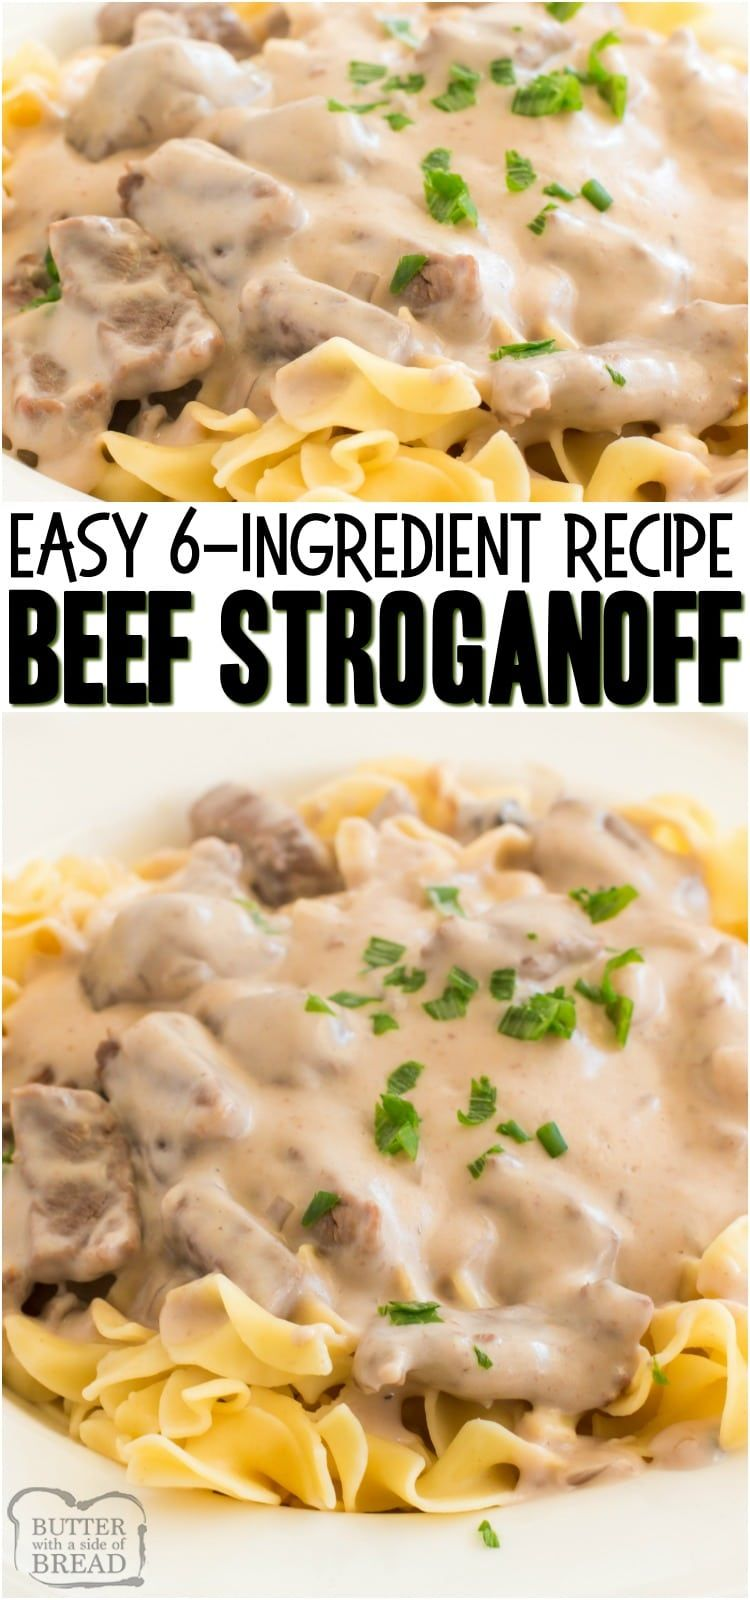 Easy Beef Stroganoff Recipe is a classic, creamy & delicious family dinner recipe.  With just a few simple ingredients, you too can make this mouth watering easy Beef Stroganoff dinner in no time at all. #dinner #easydinner #beef #stroganoff #pasta #recipe from BUTTER WITH A SIDE OF BREAD